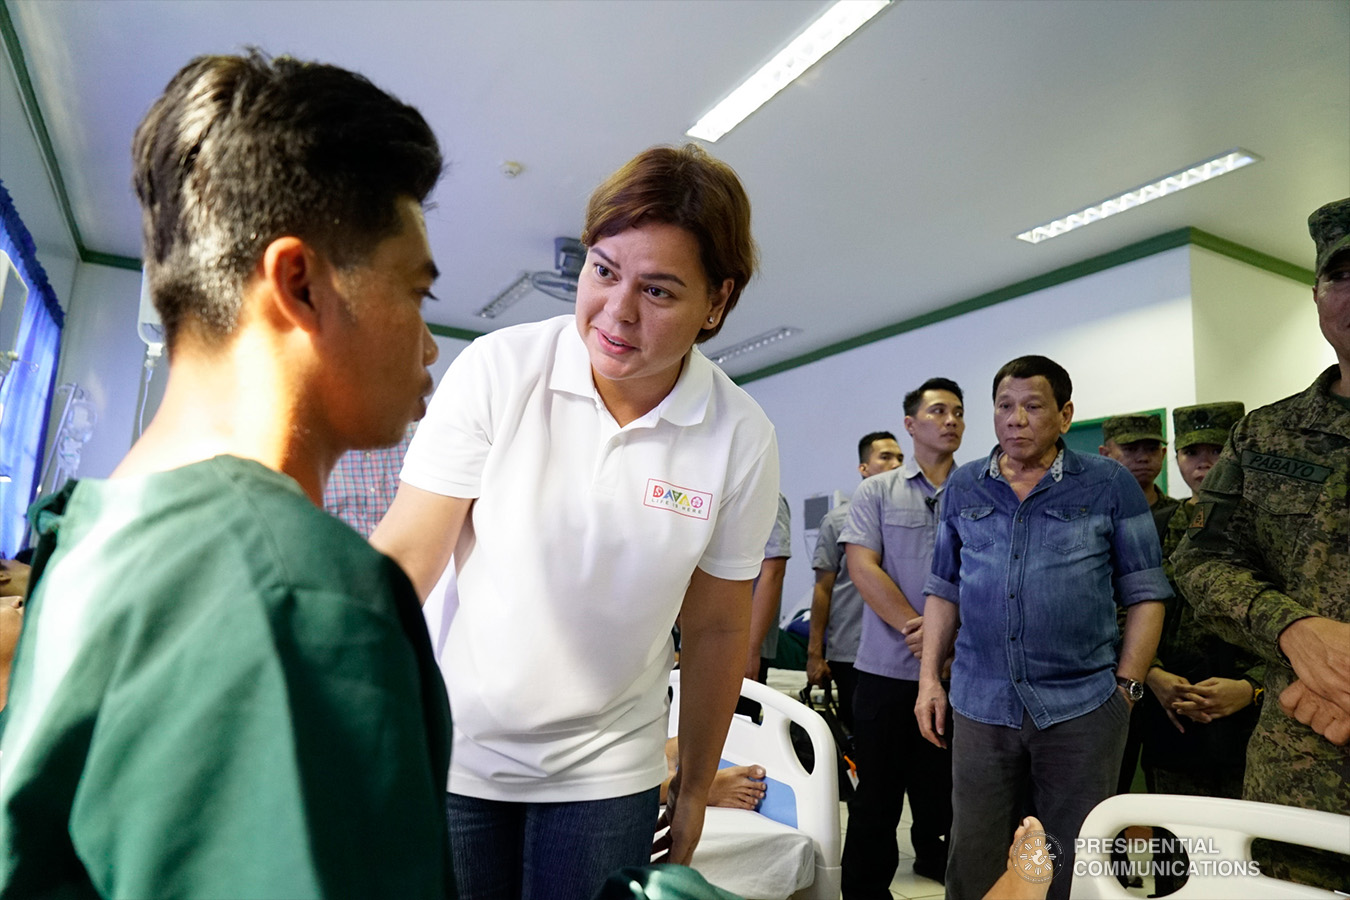 President Rodrigo Roa Duterte looks on as his daughter, Davao City Mayor Sara Duterte-Carpio, checks the condition of one of the wounded soldiers during their visit to Camp Teodulfo Bautista in Jolo, Sulu on January 28, 2019. The President personally checked the condition of the soldiers who were wounded during the twin bombings at the Cathedral of Our Lady of Mount Carmel in Jolo, Sulu last January 27. KING RODRIGUEZ/PRESIDENTIAL PHOTO